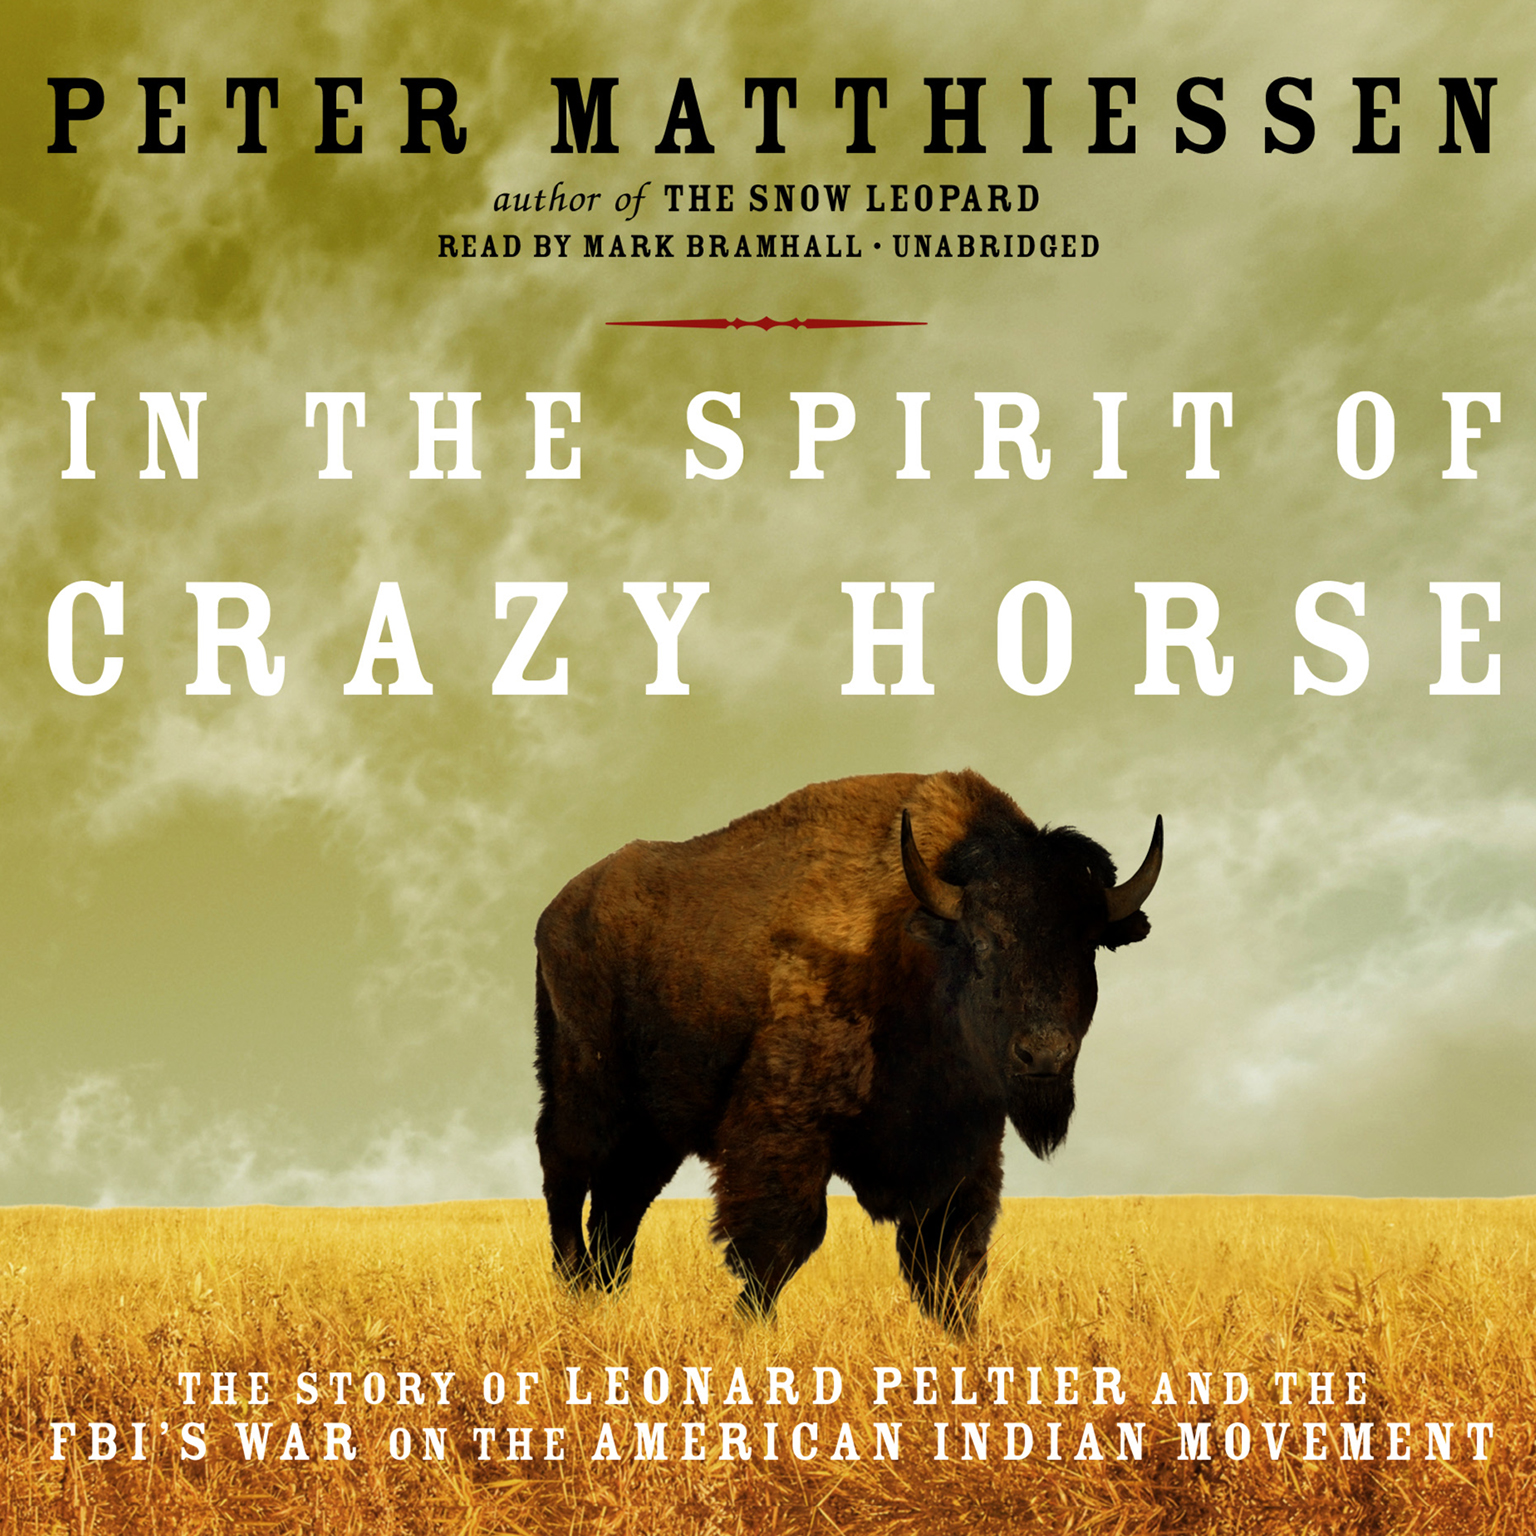 Printable In the Spirit of Crazy Horse: The Story of Leonard Peltier and the FBI's War on the American Indian Movement Audiobook Cover Art